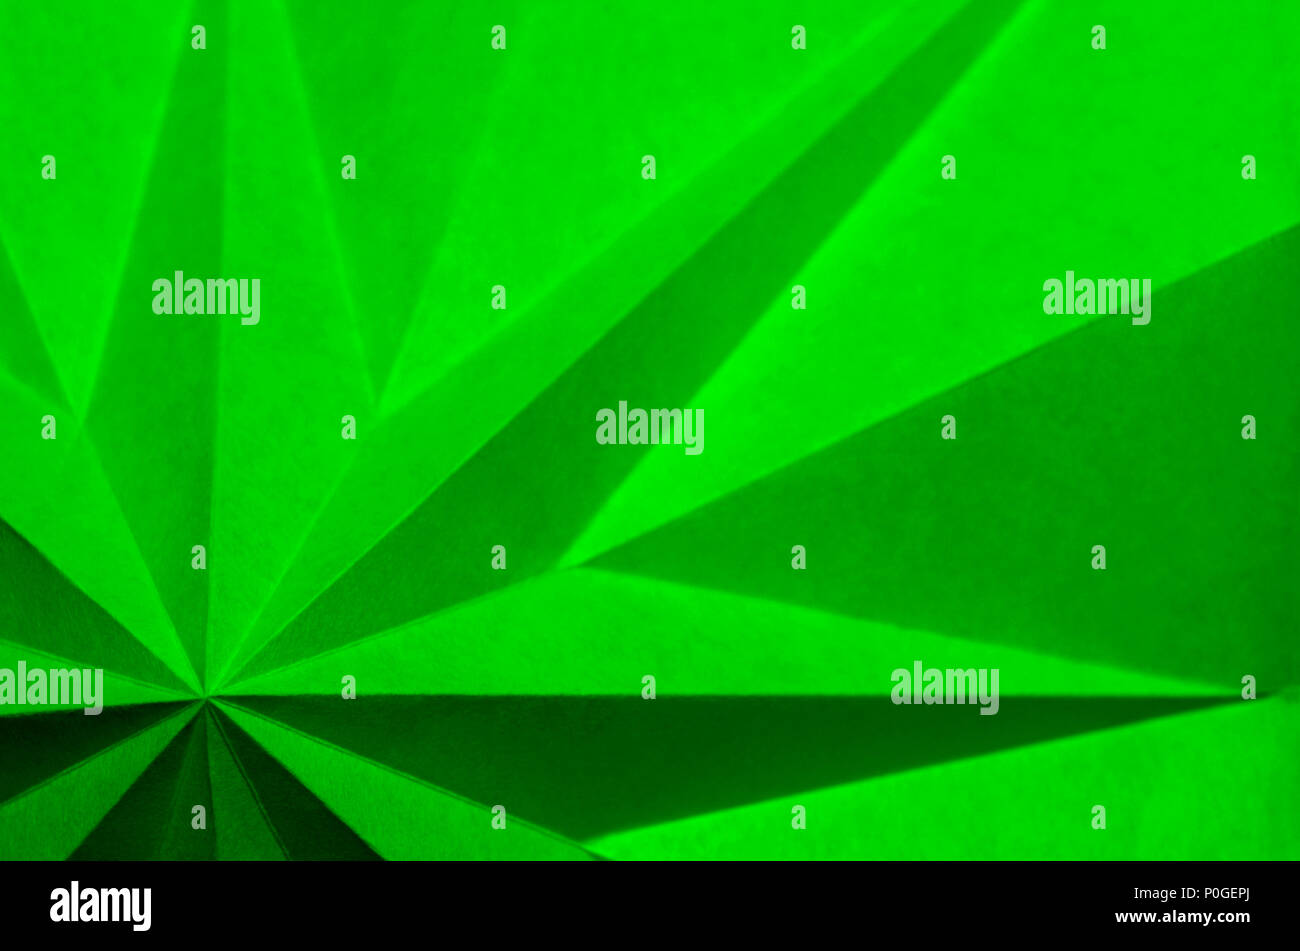 Christmas Wallpaper Background.Green Origami Based Abstract Christmas Wallpaper Background